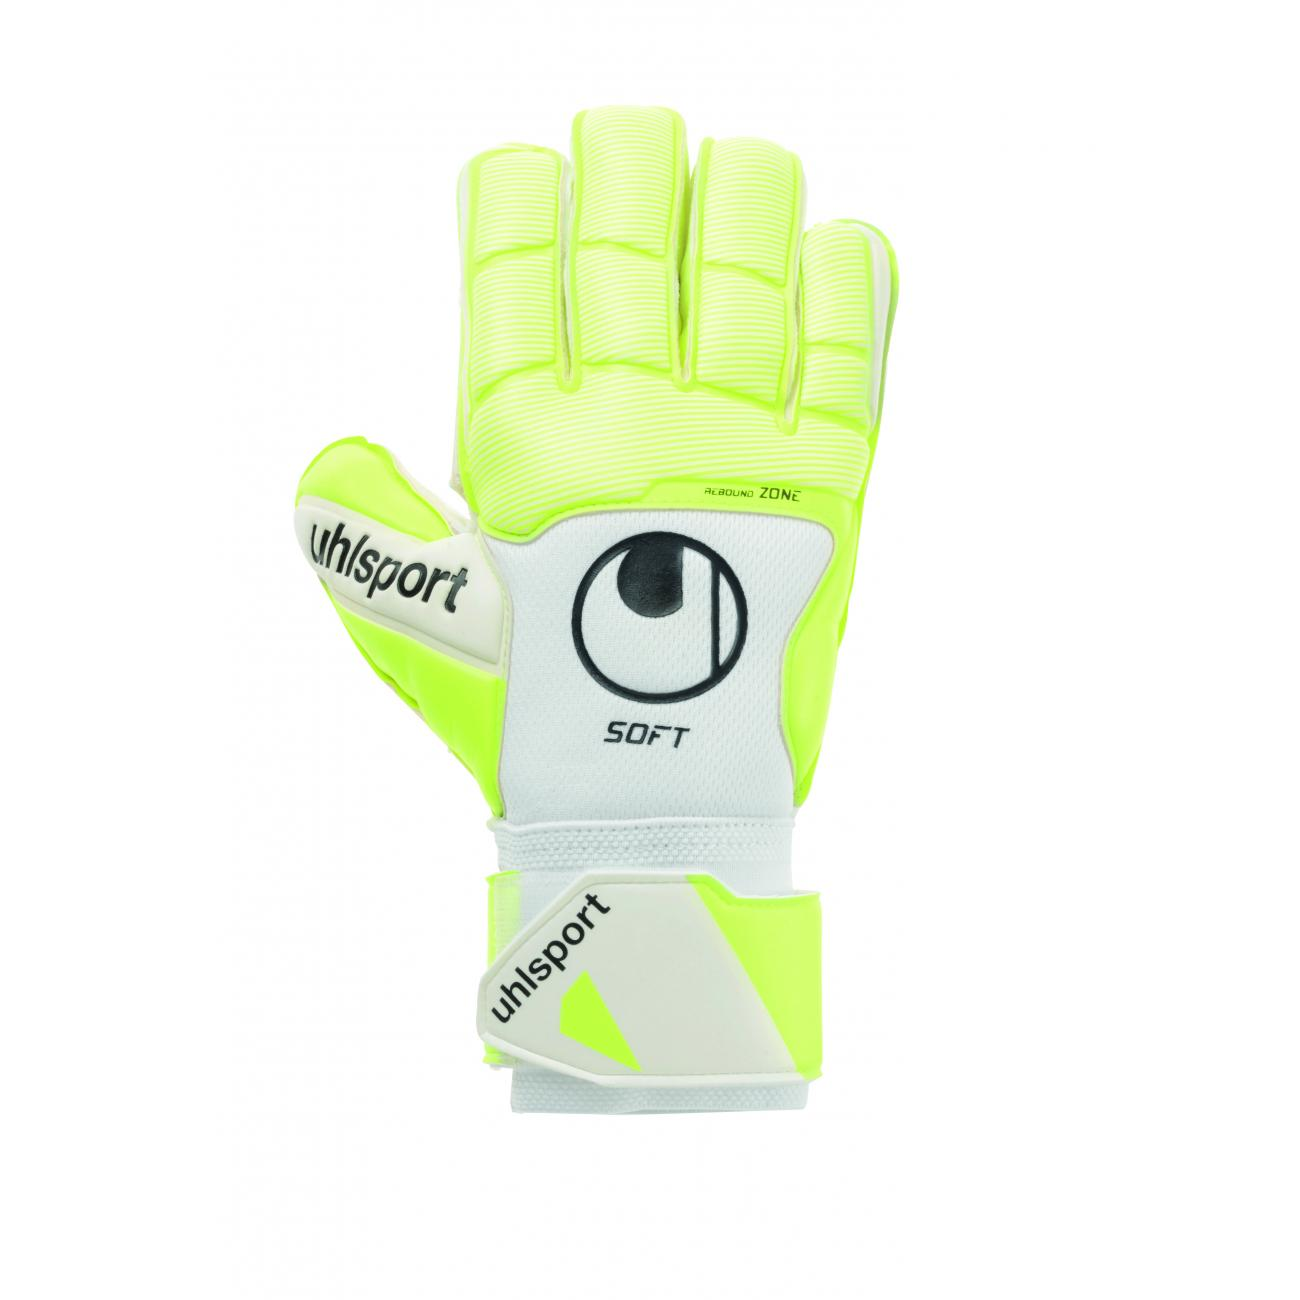 Uhlsport Pure Alliance soft pro